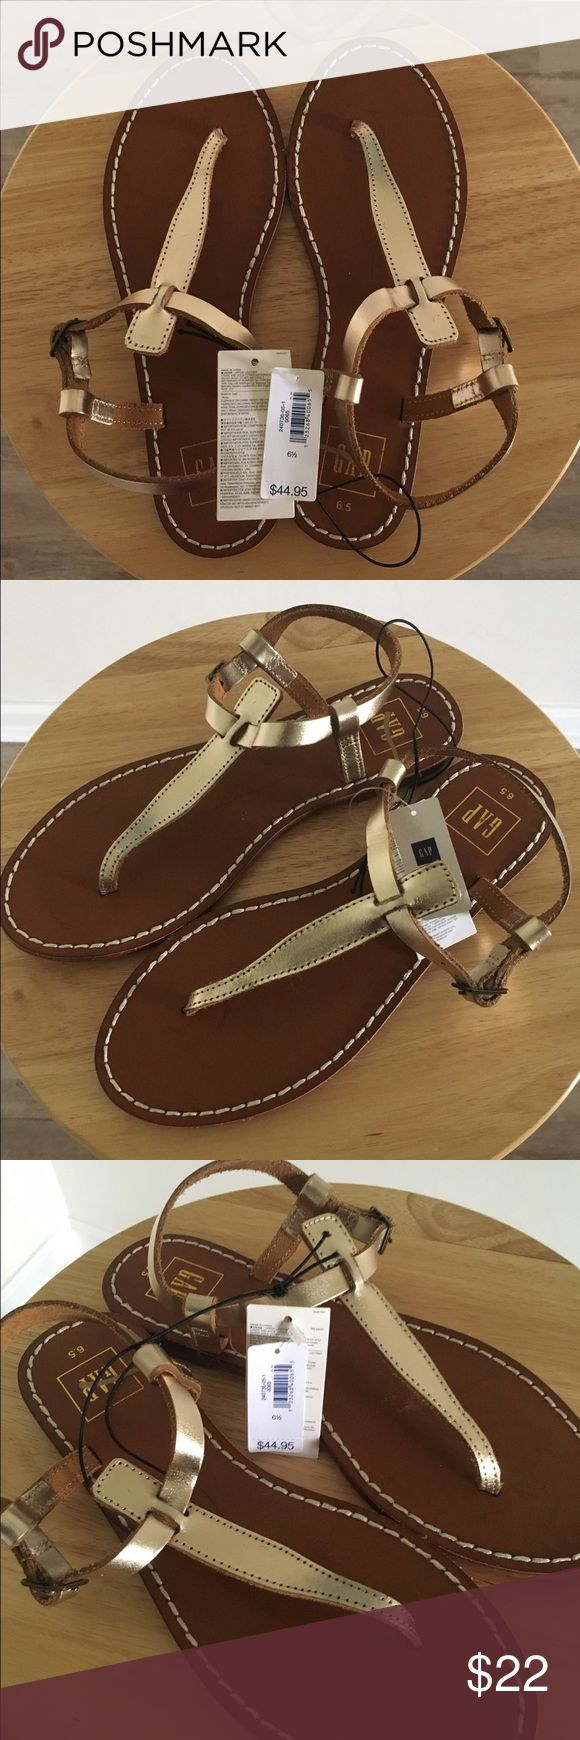 NWT Gap Women's Gold Leather Thong Sandals 6.5 M New with tags! Gap women's gold leather T-strap thong sandals with adjustable buckle. Size 6.5 M. True to size. GAP Shoes Sandals